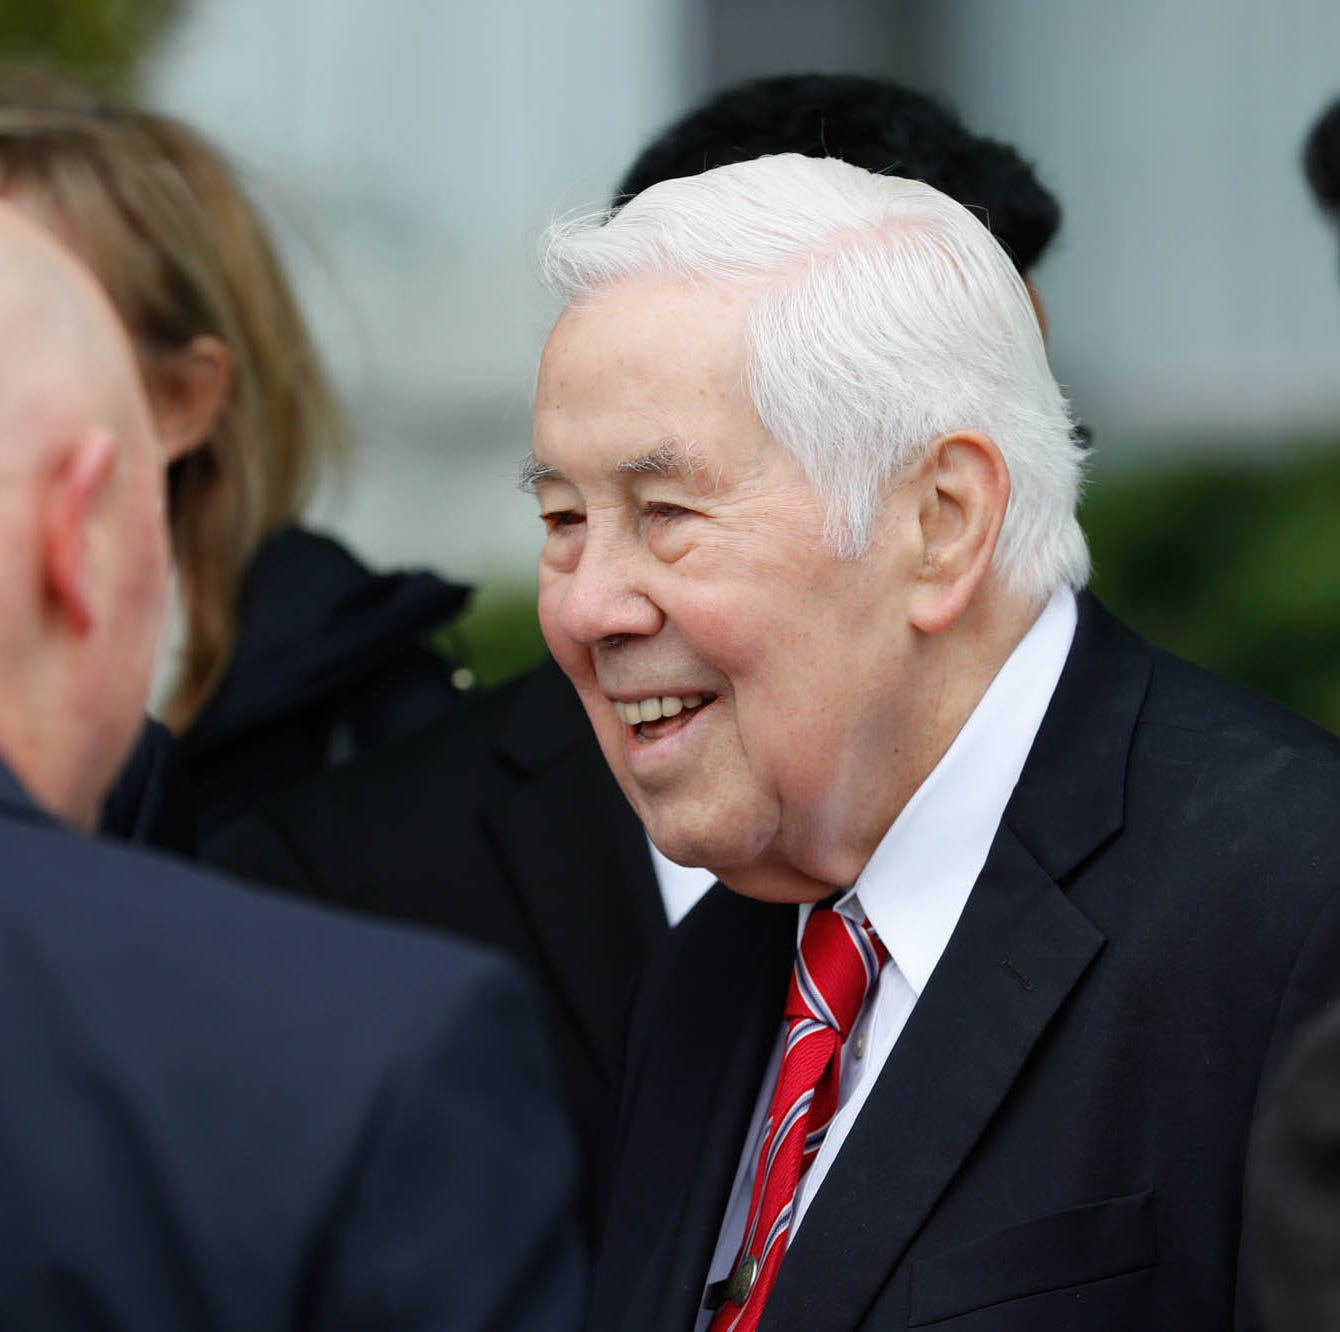 Richard Lugar to lie in state at Statehouse before his funeral. Here's why that's matters.